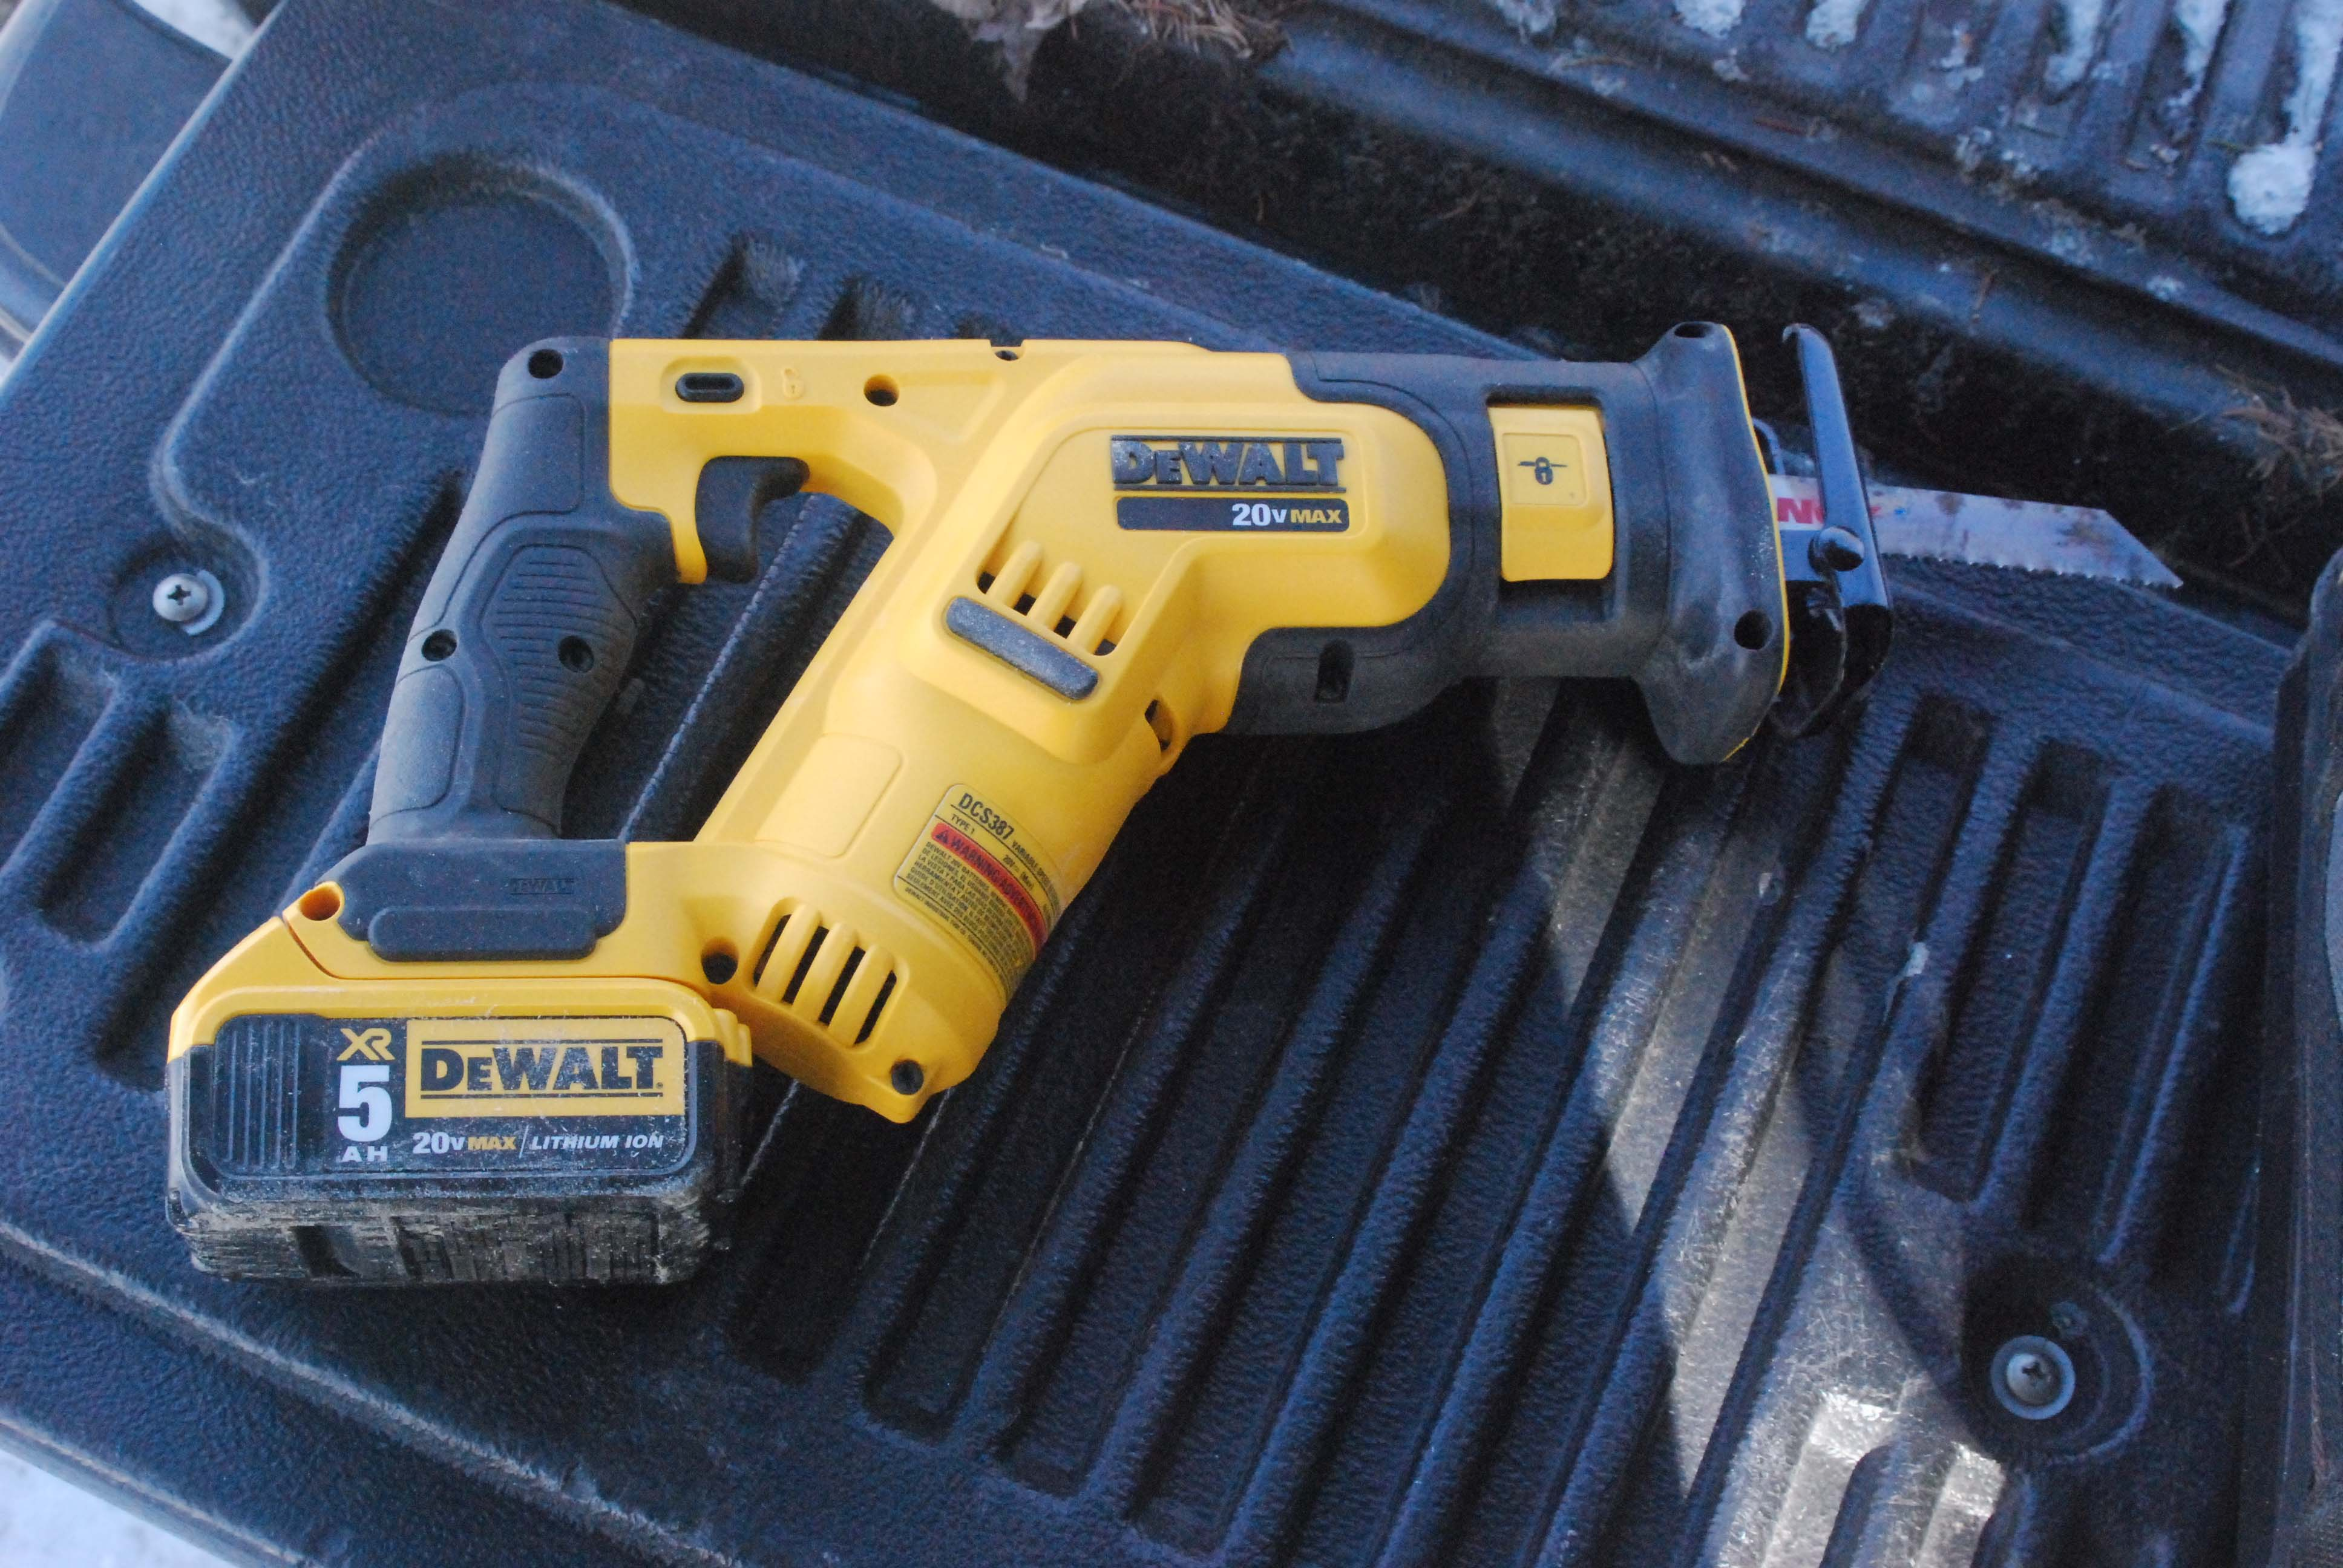 DeWalt 20V MAX Compact Reciprocating Saw | Tools of the Trade